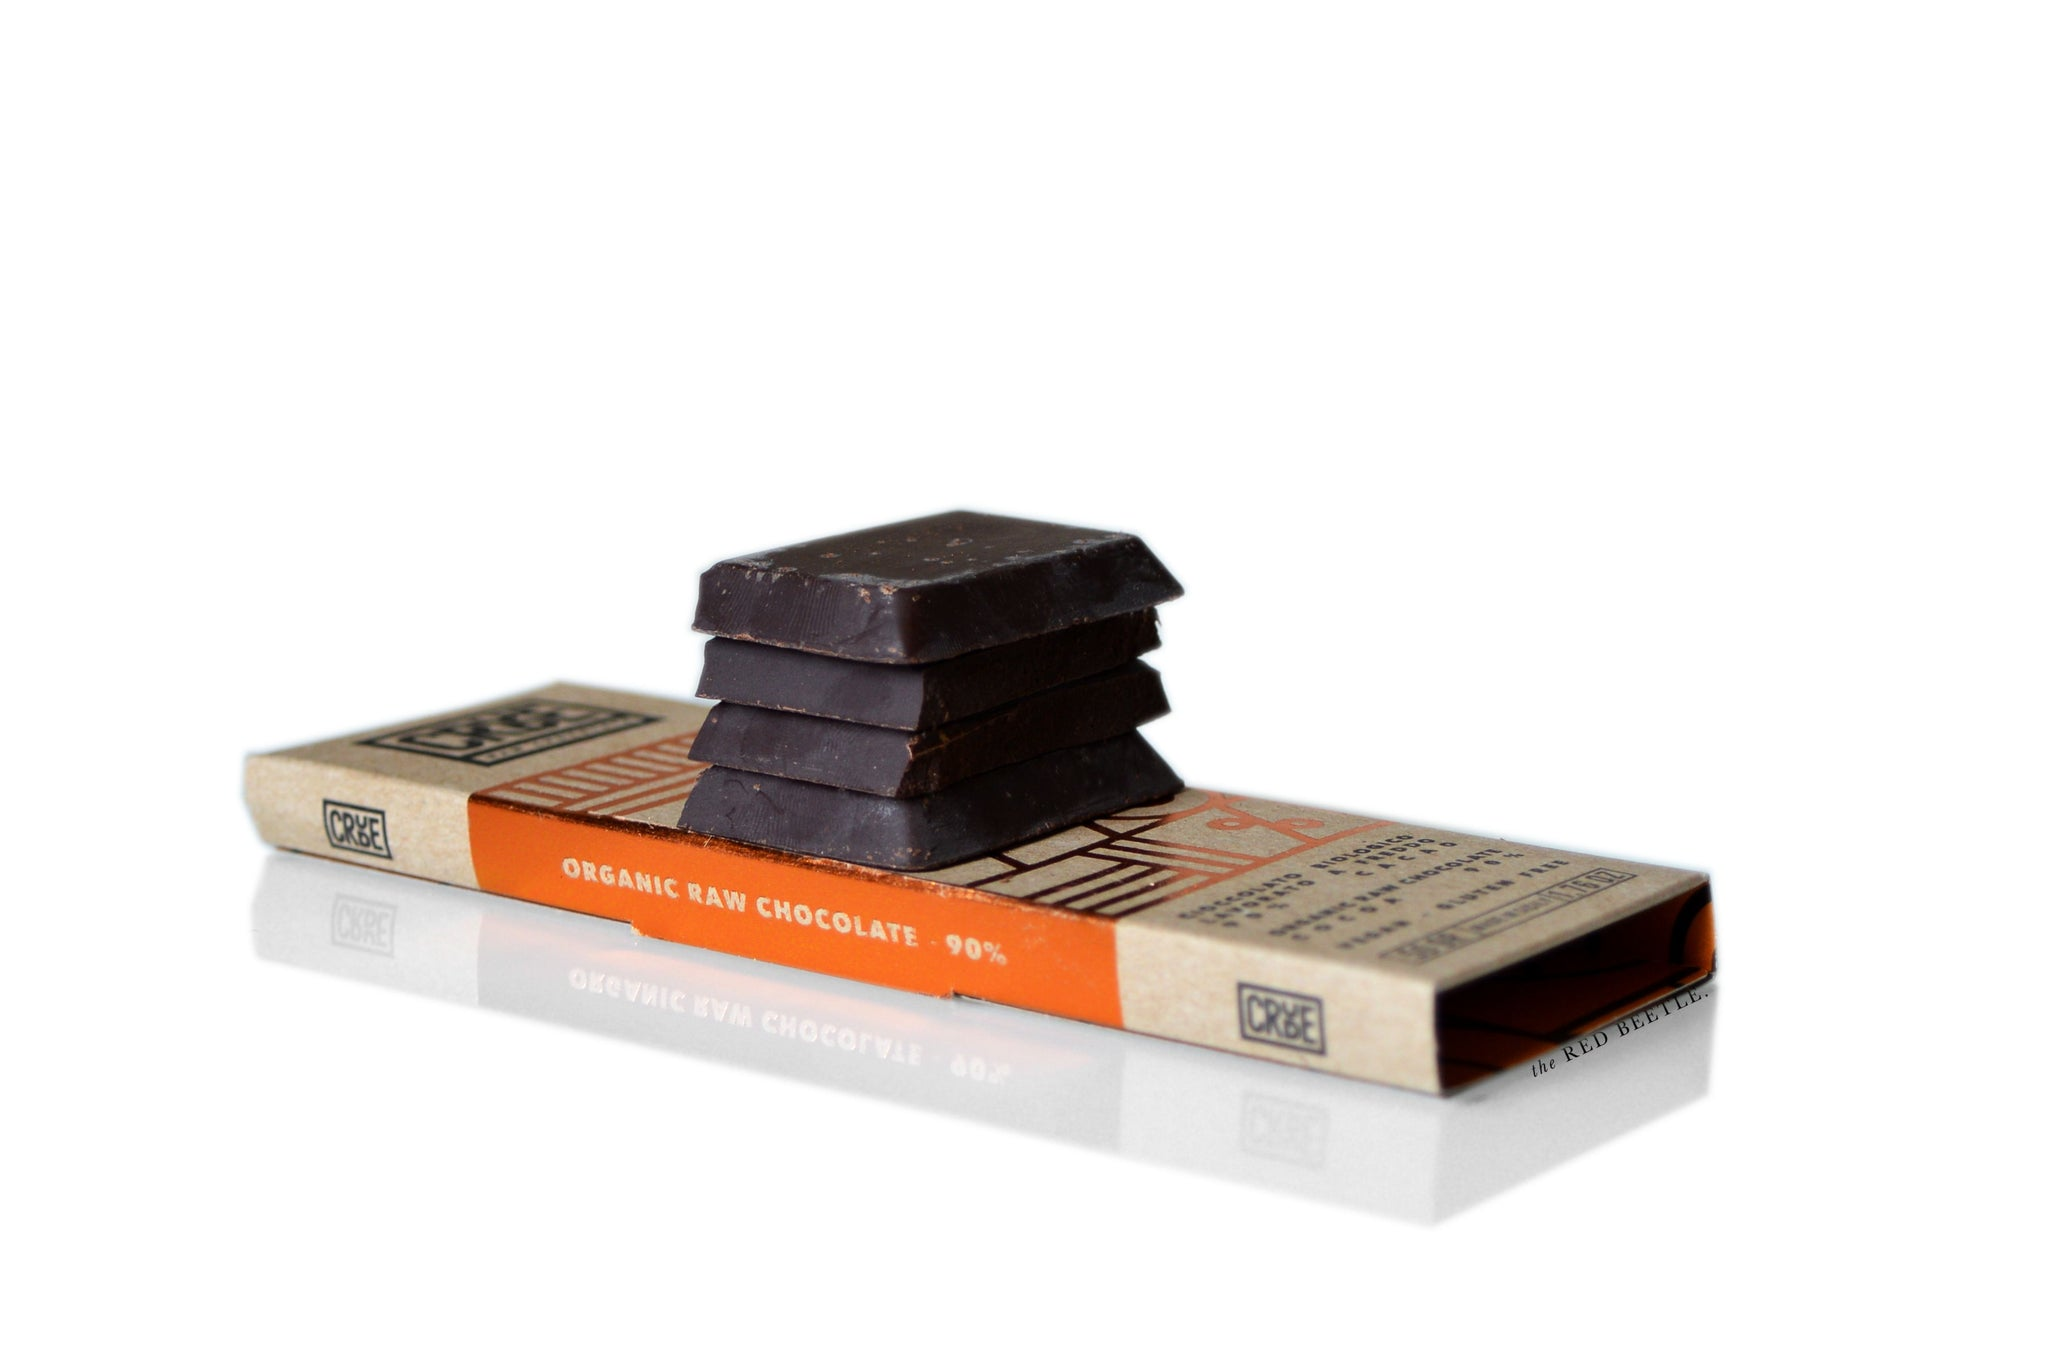 Crude by Sabadì Raw Chocolate Bar 90% cacao with coconut flower sugar | Vegan & Gluten Free